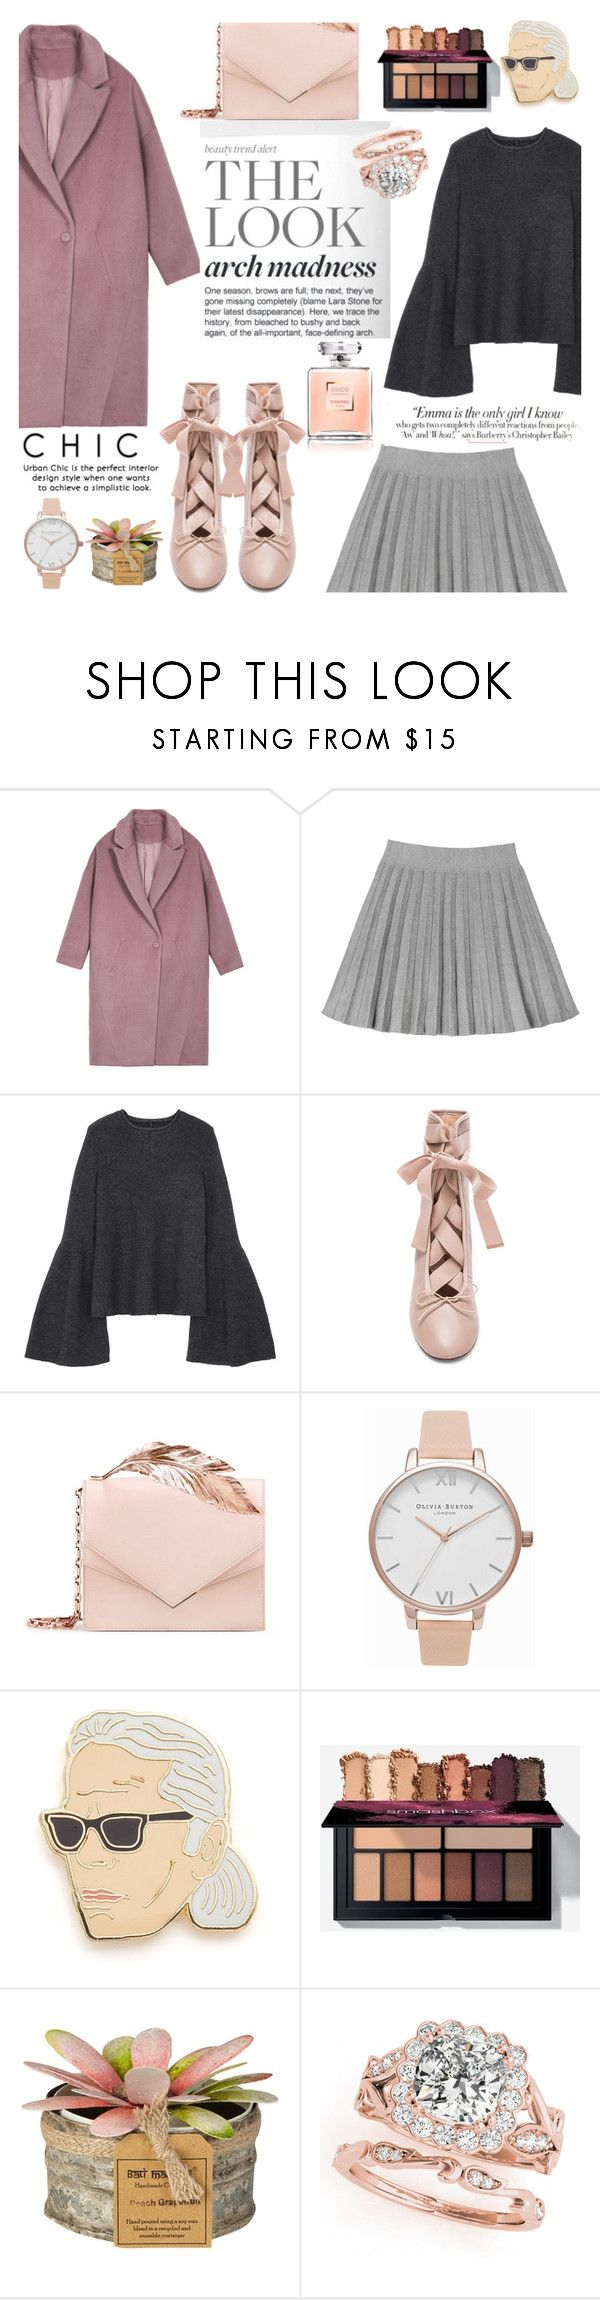 """""""Winter Ballet"""" by shopindigodesign ❤ liked on Polyvore featuring RALPH & RUSSO, Olivia Burton, Georgia Perry, Vanity Fair, topsets, polyvoreeditorial, topset and polyvorefashion"""